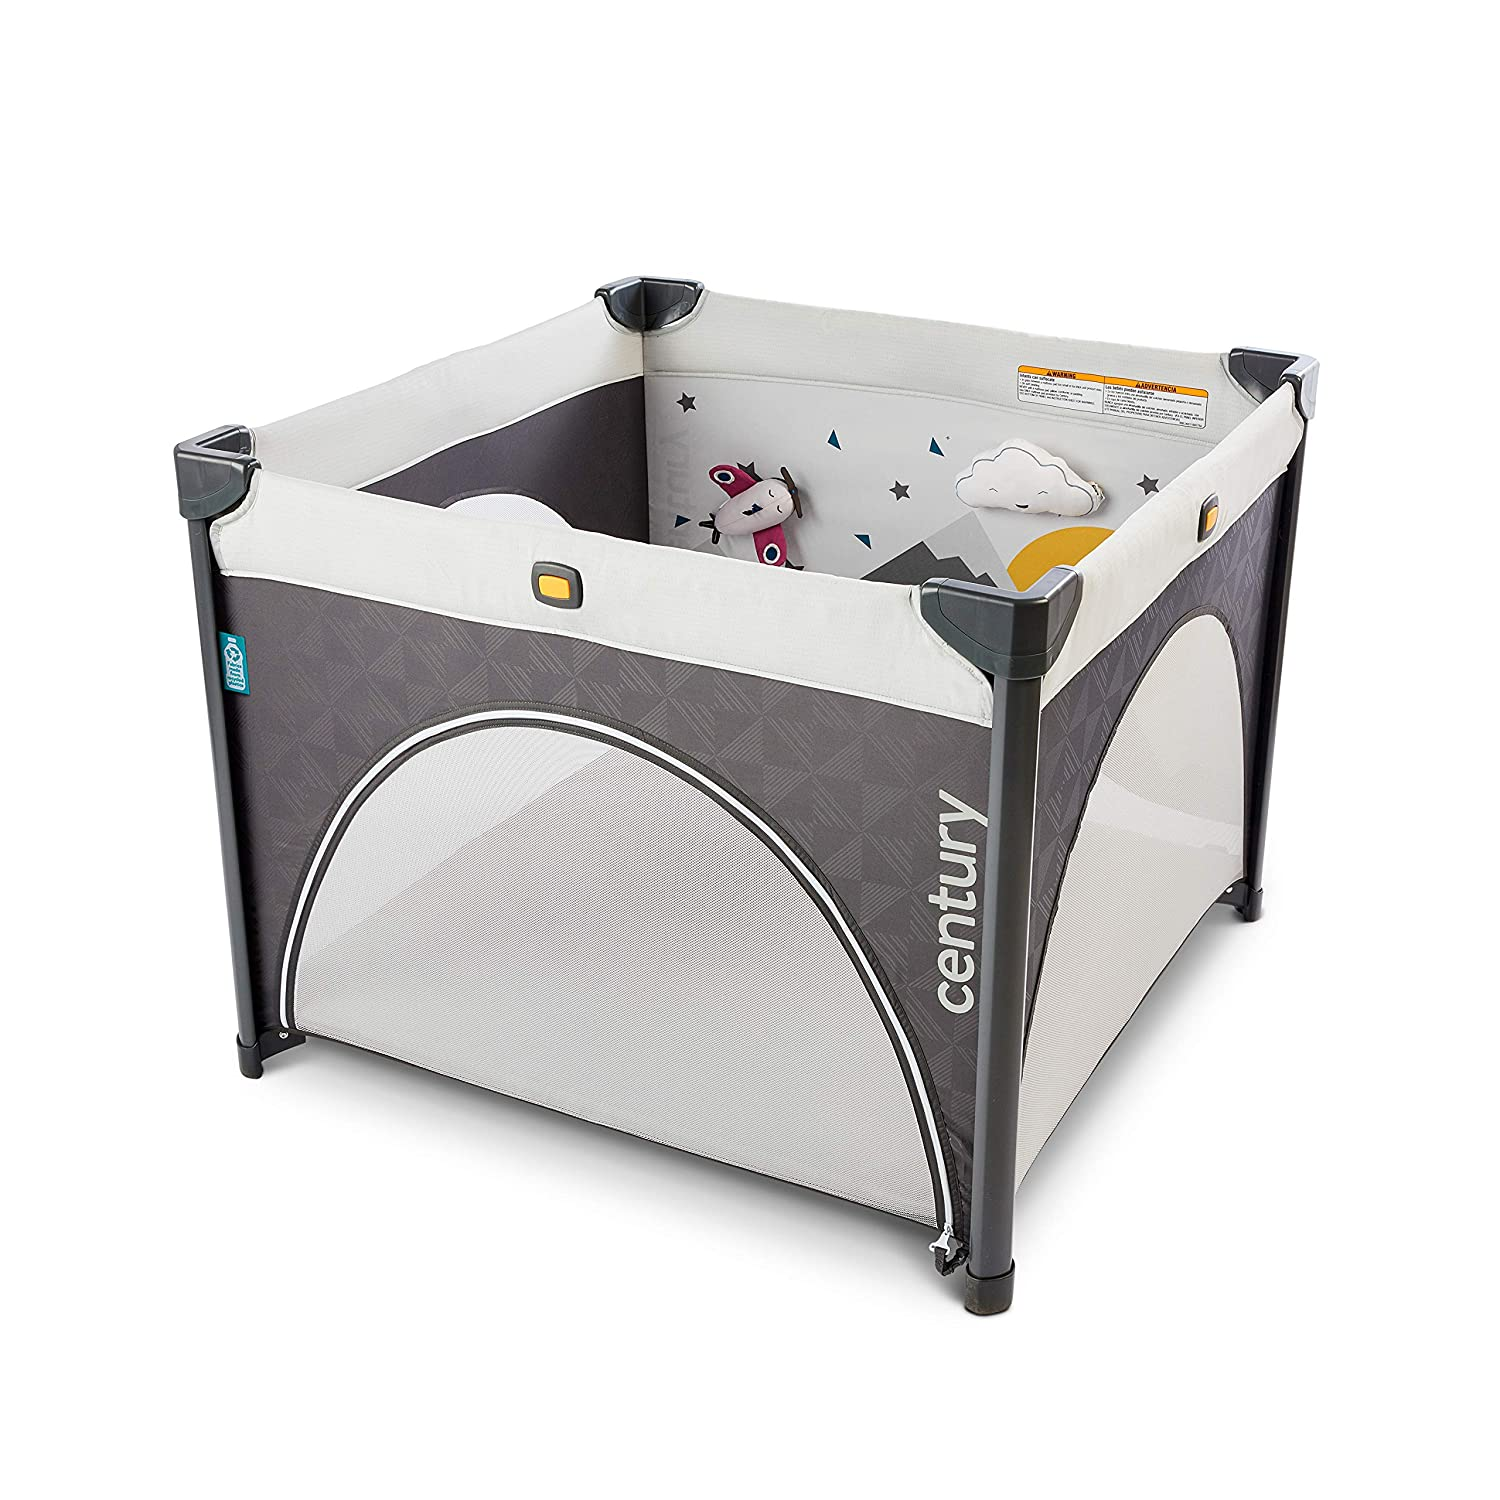 Century Play Max 67% OFF On 2-in-1 Playard and Playpen Activity Incl Center Super special price